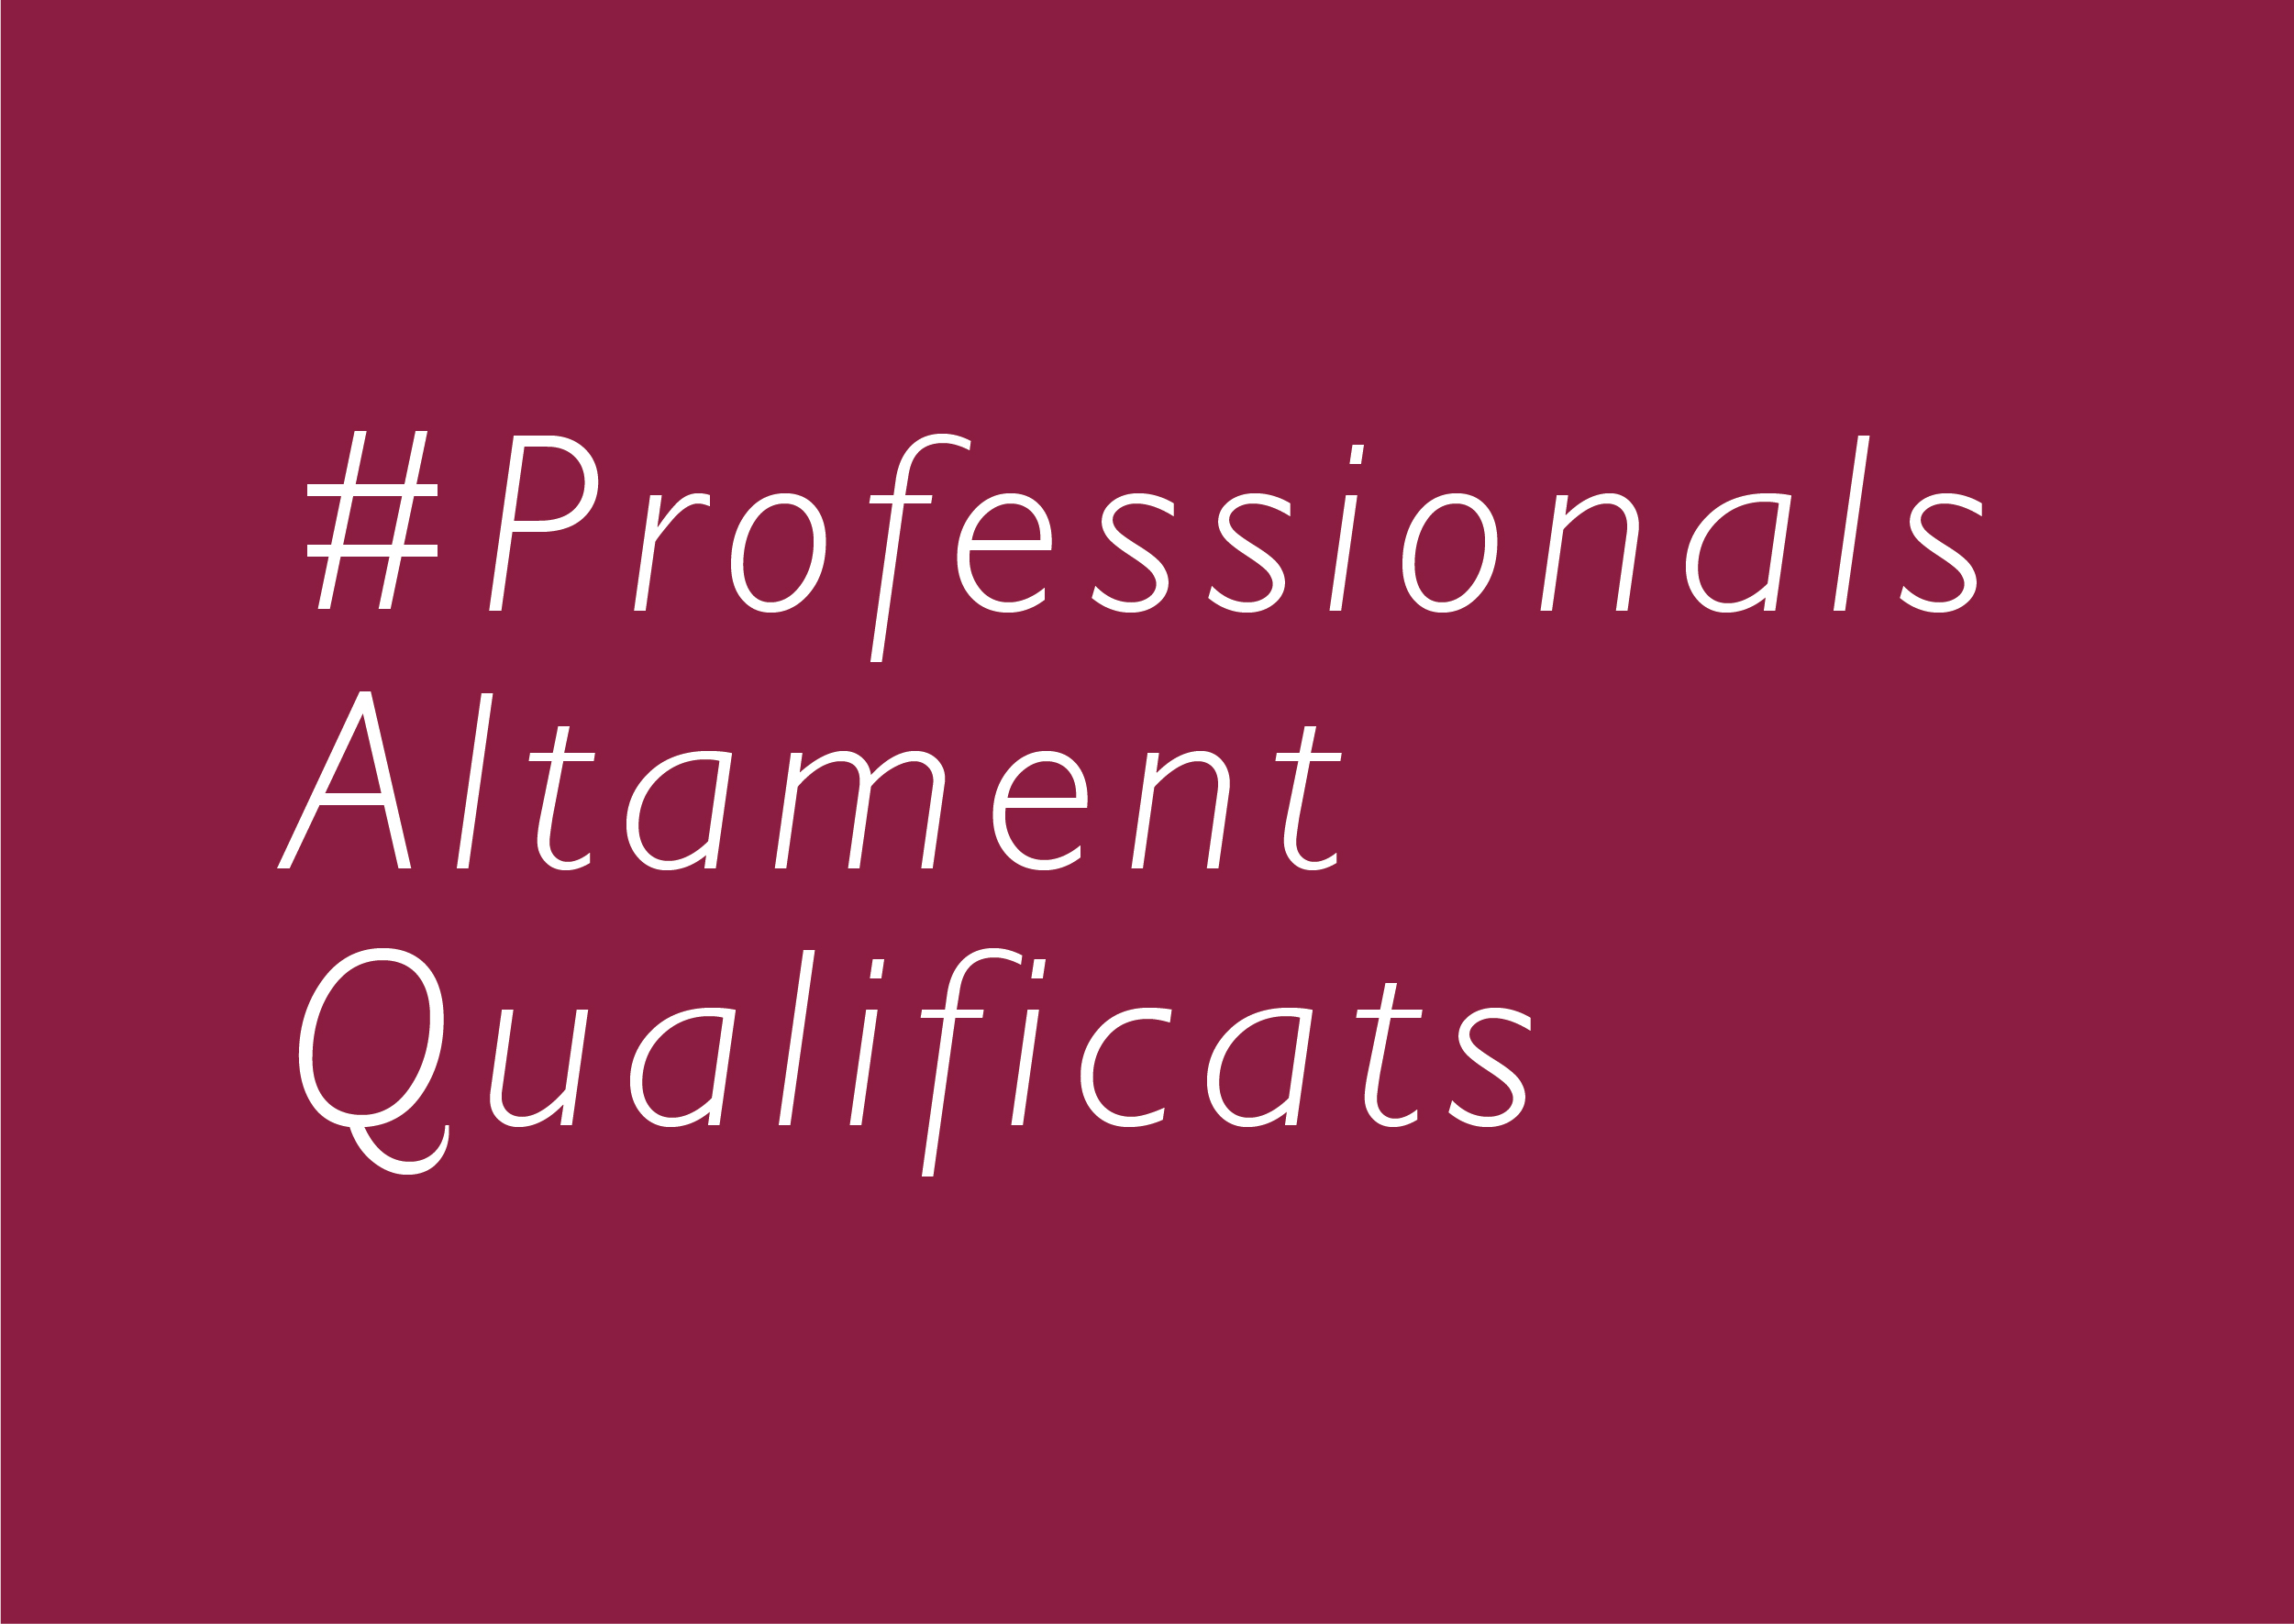 ProfessionalsQualificats